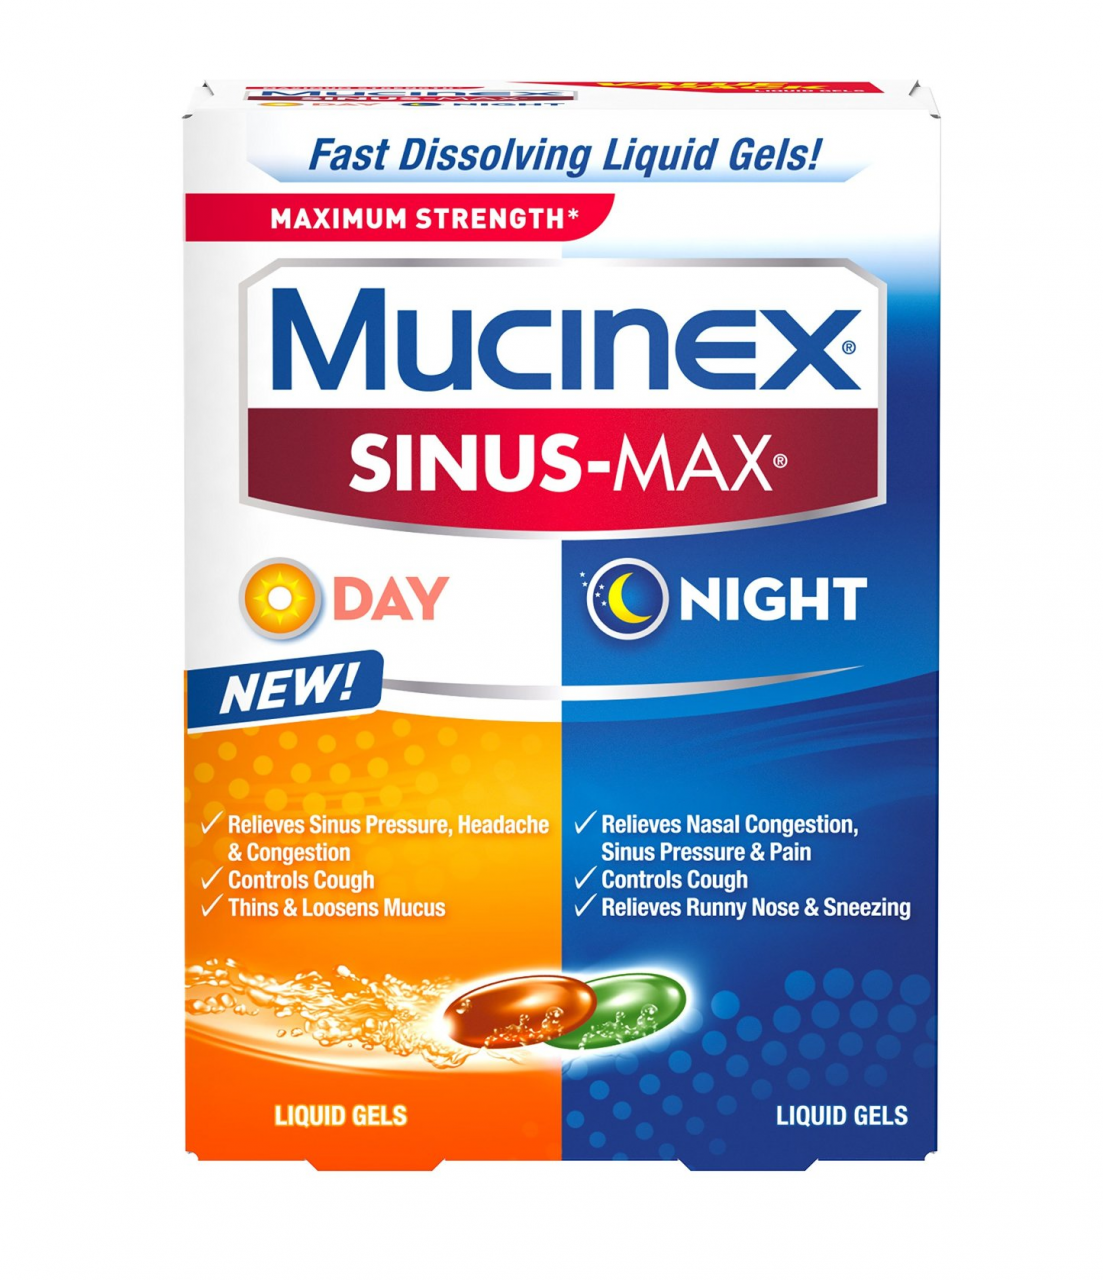 Mucinex Sinus-Max Max Strength Day & Night Liquid Gels 24